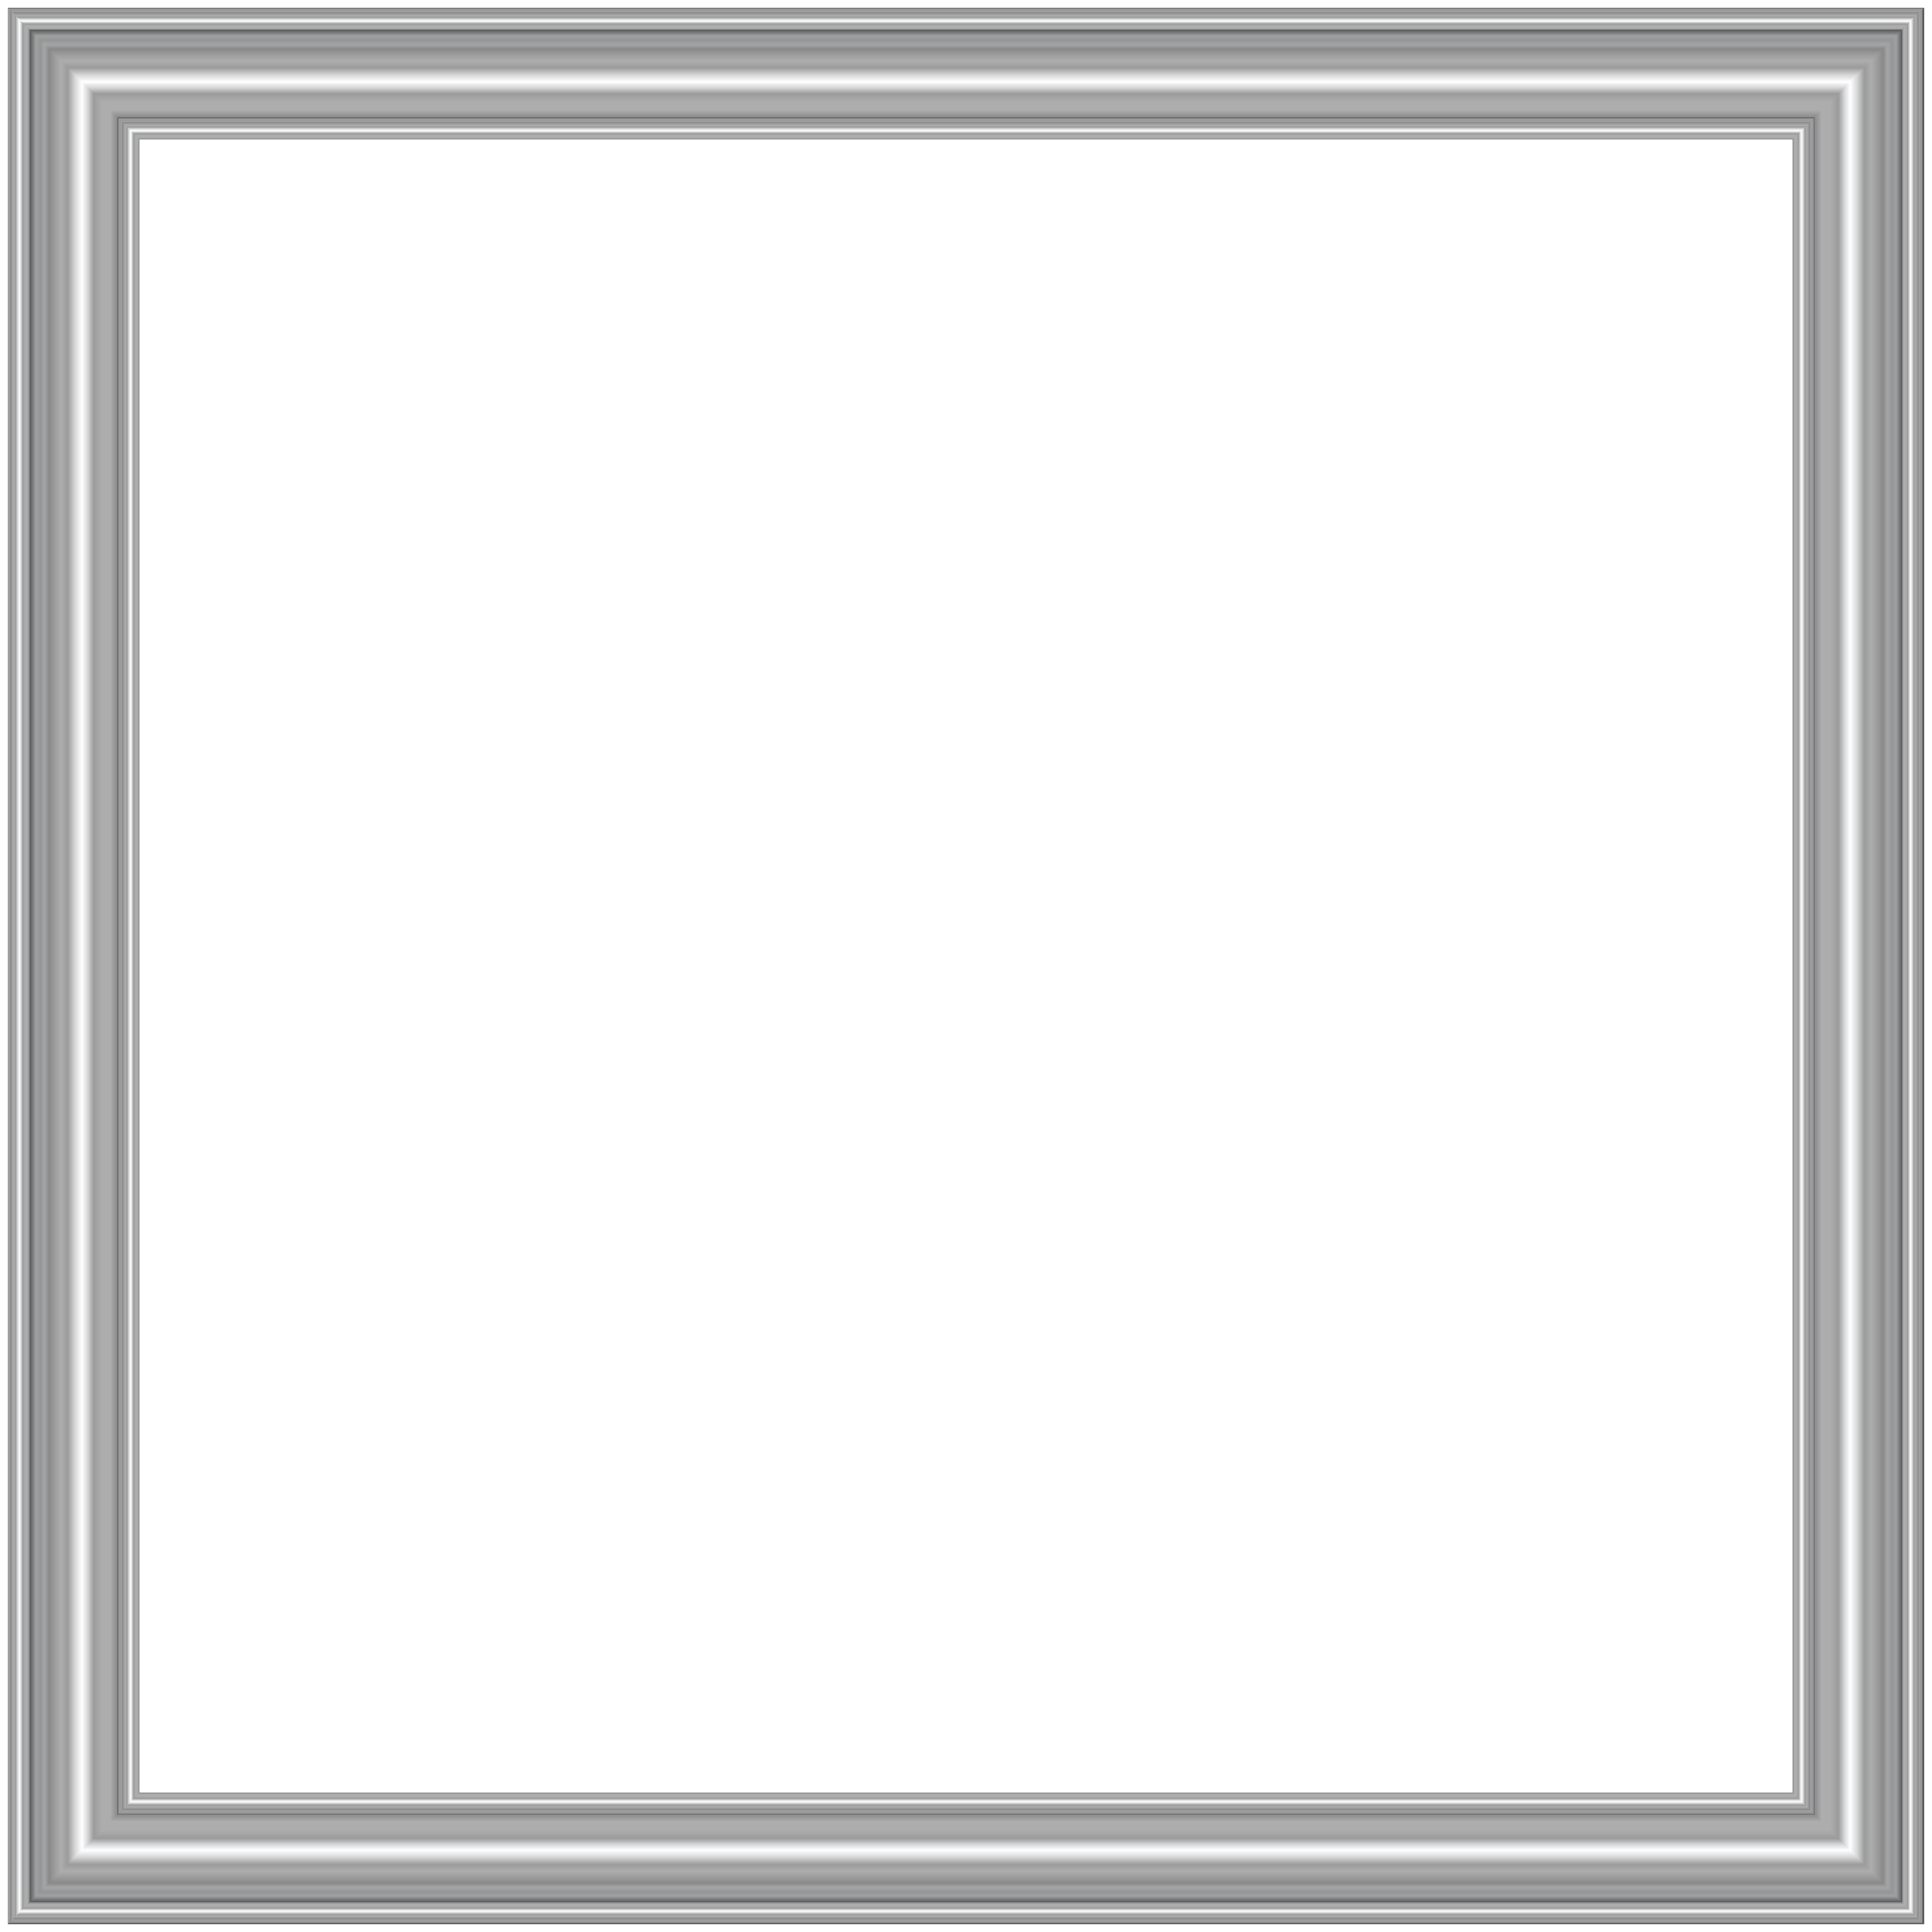 Square Clipart Photograph Border Square Photograph Border